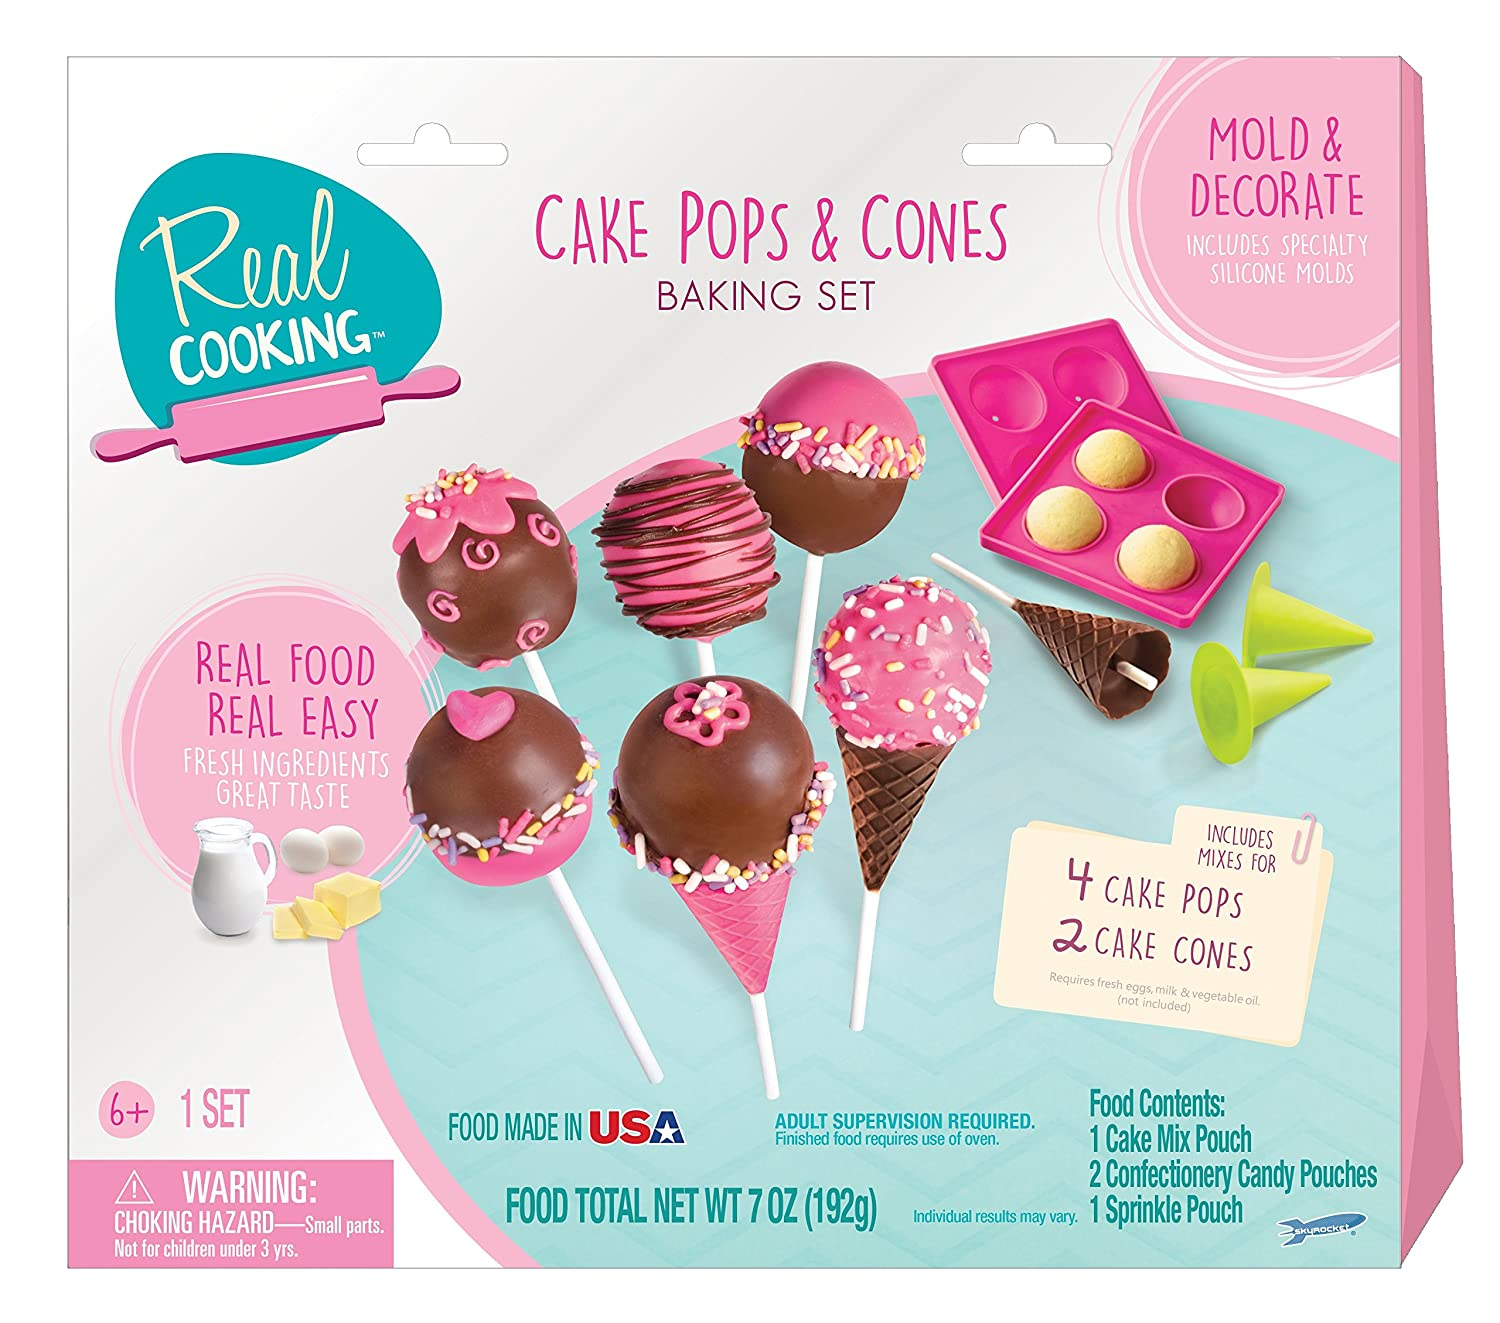 real cooking cake pops cones baking set 15 pc cake mix sprinkles candy included food. Black Bedroom Furniture Sets. Home Design Ideas